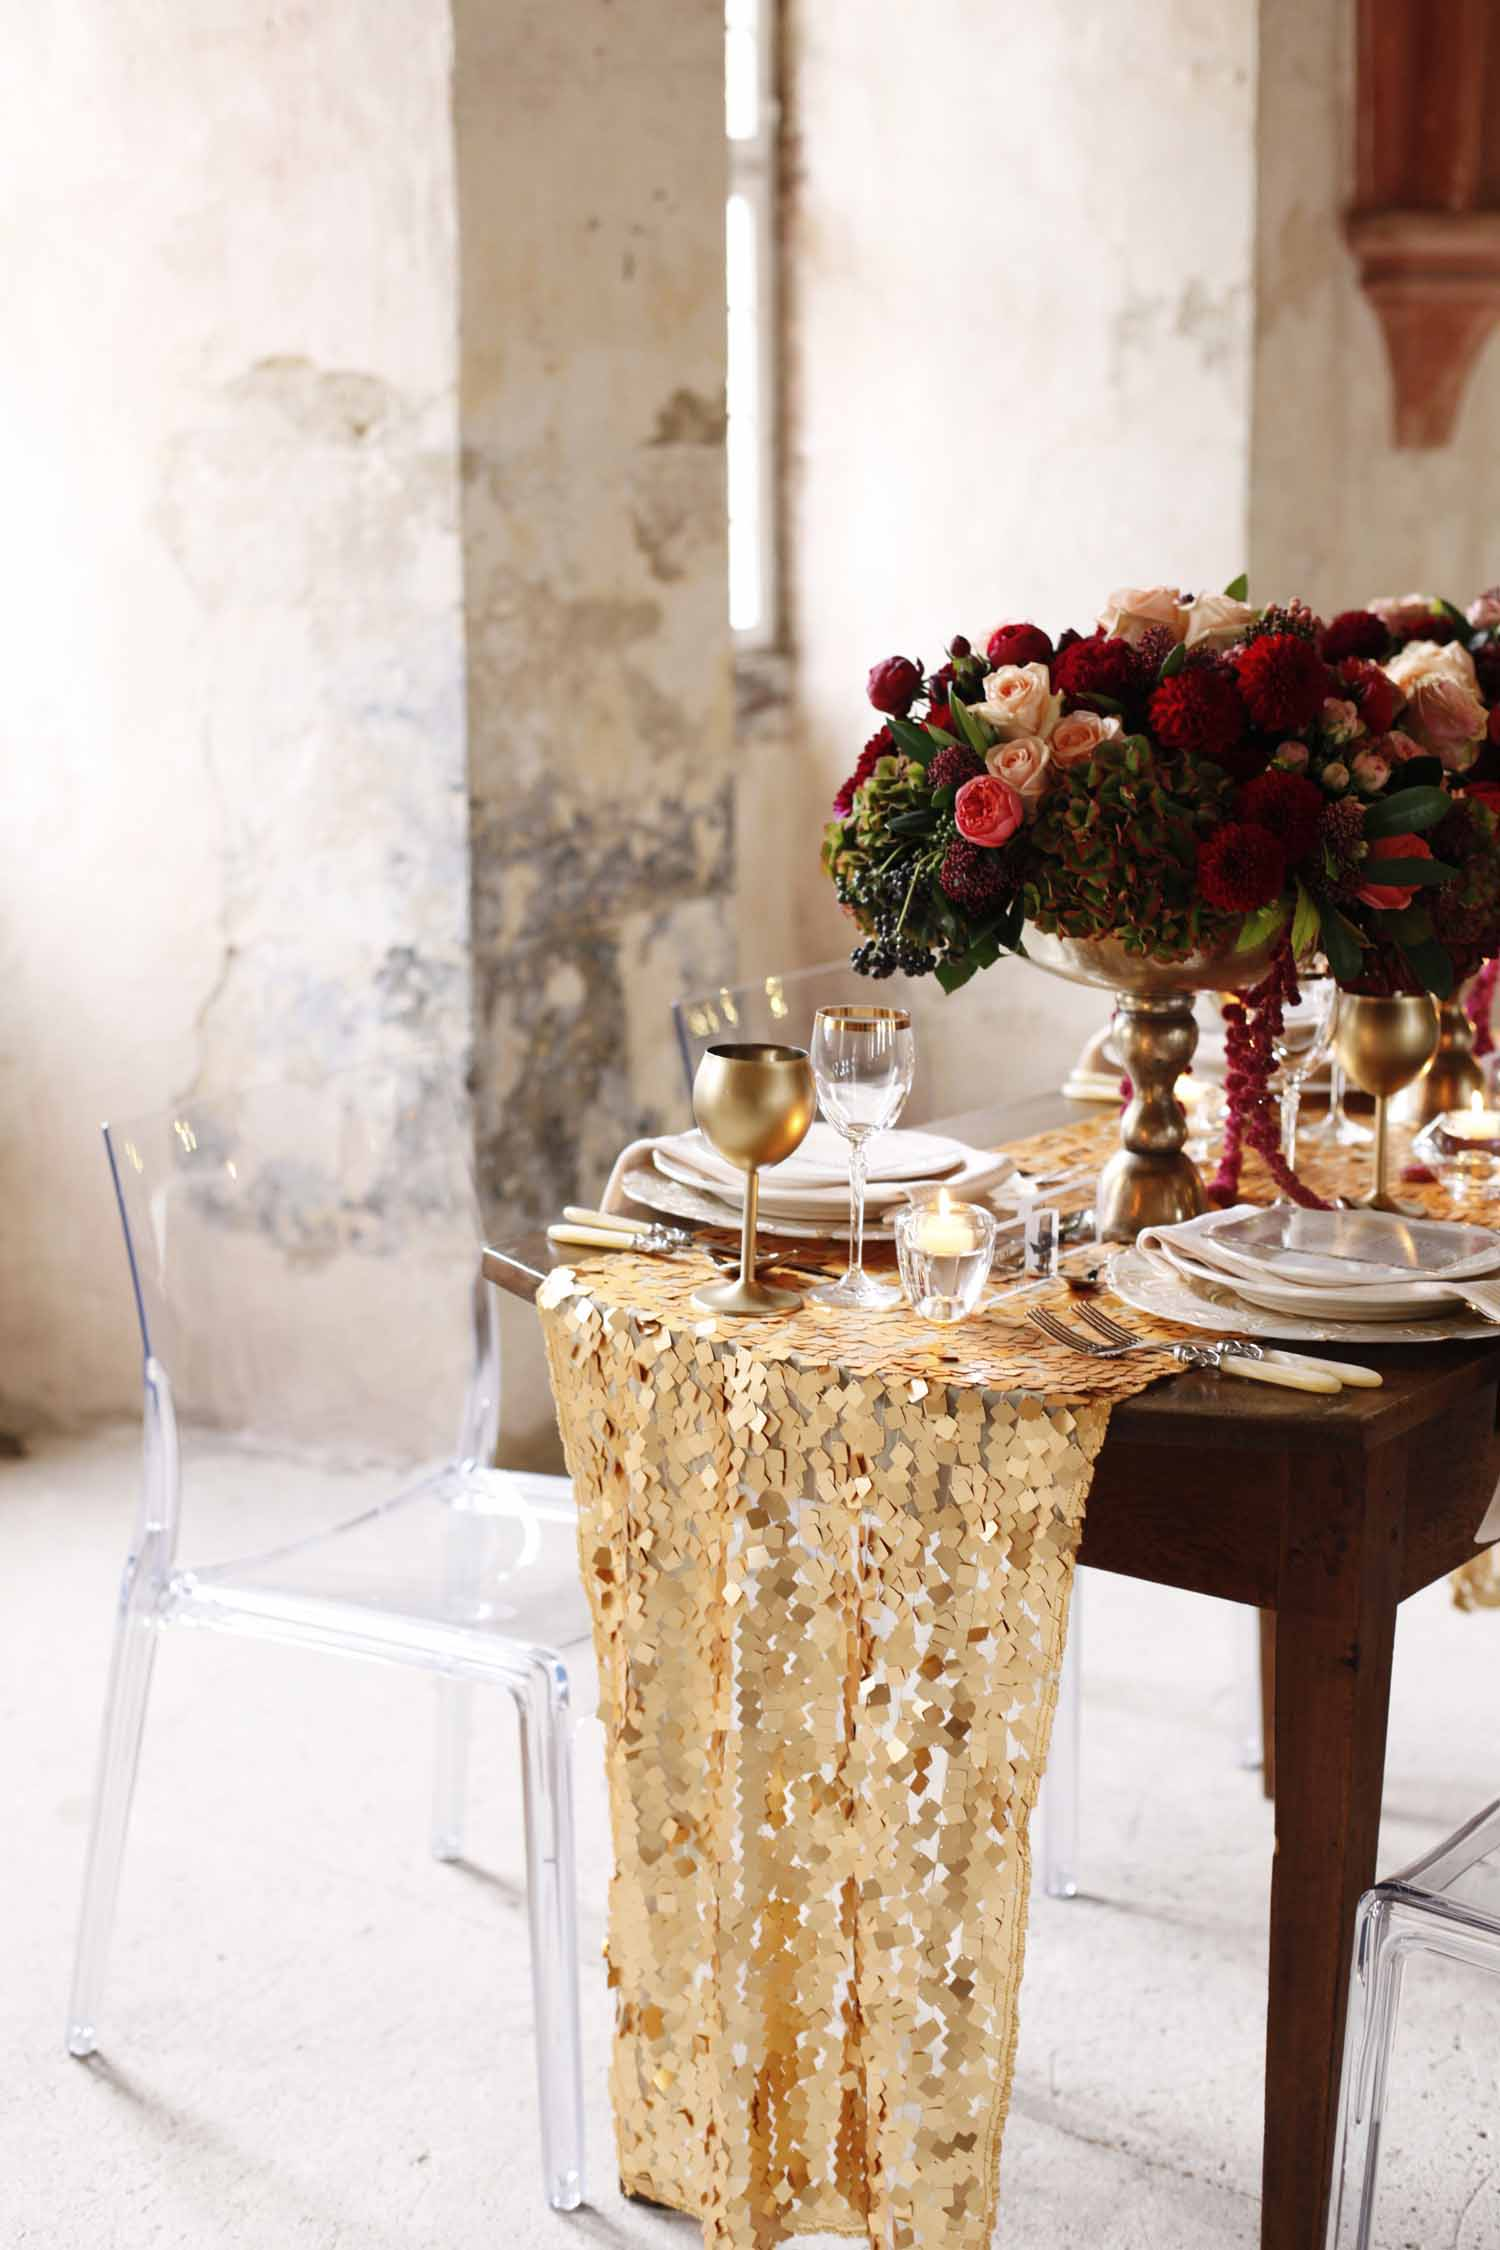 Wooden sweetheart table, gold sequin table runner, and floral centerpiece in gold compote for Wedding Style Shoot in Kloster Eberbach, Germany, designed by Flora Nova Design, Seattle